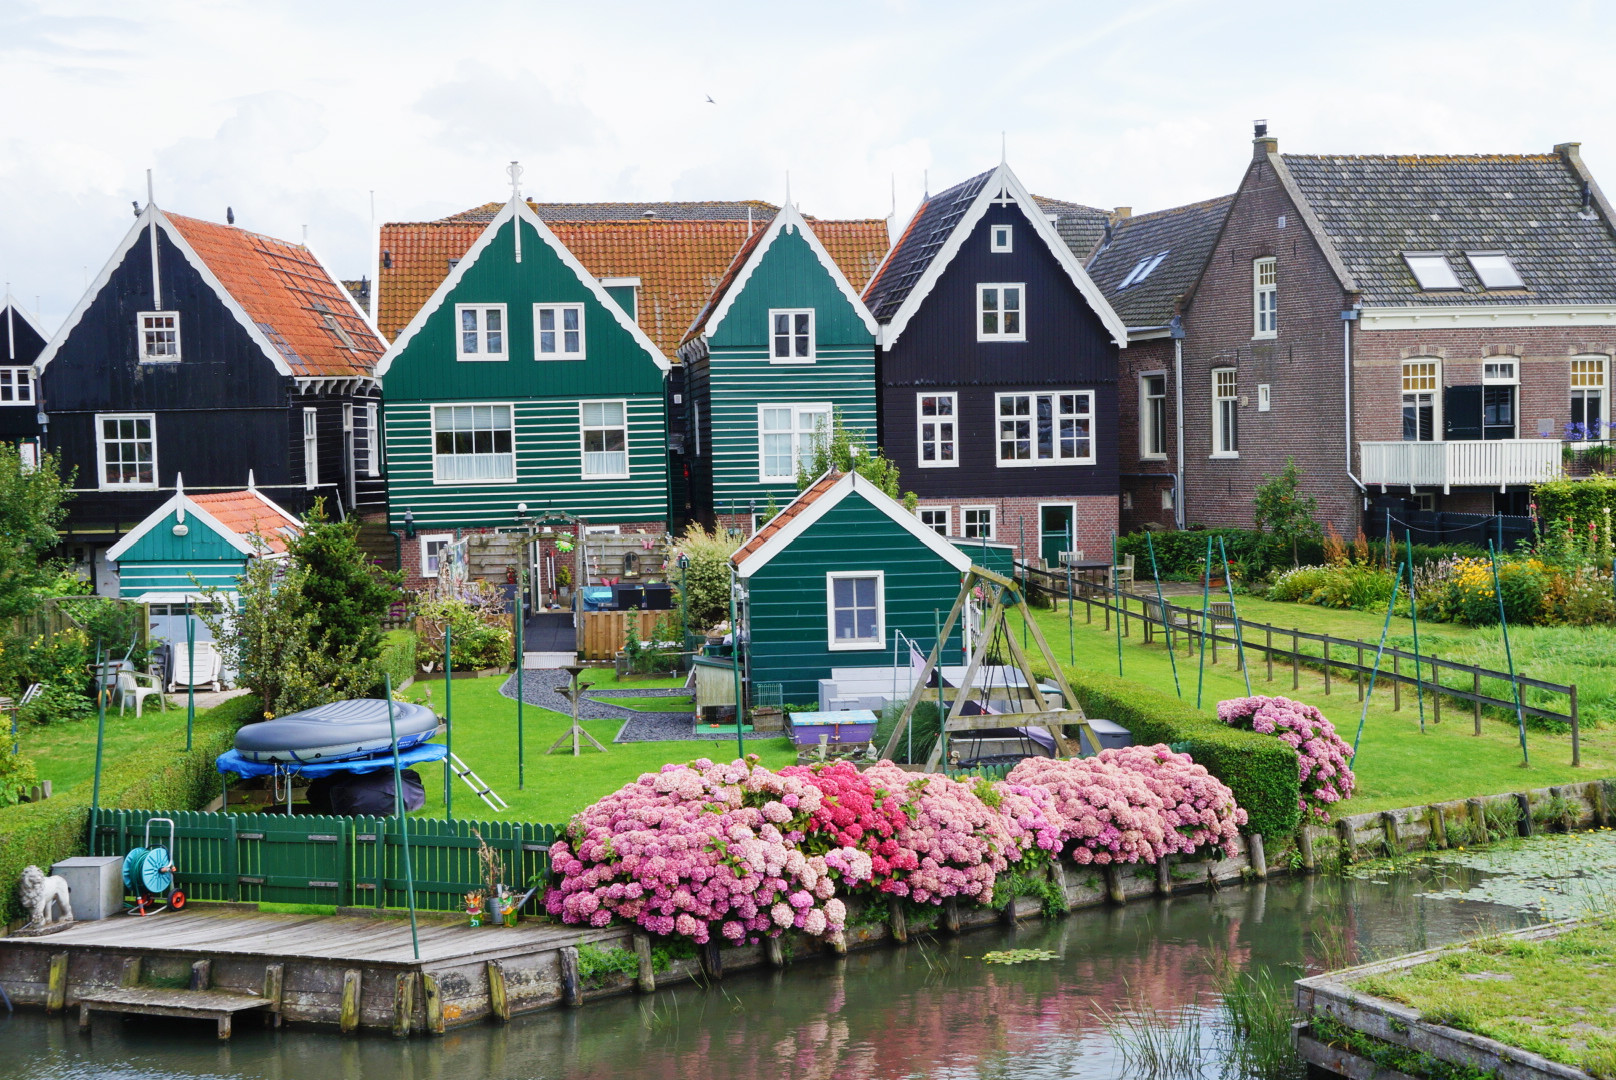 Holland And Holland >> File:Marken, The Netherlands 12.jpg - Wikimedia Commons